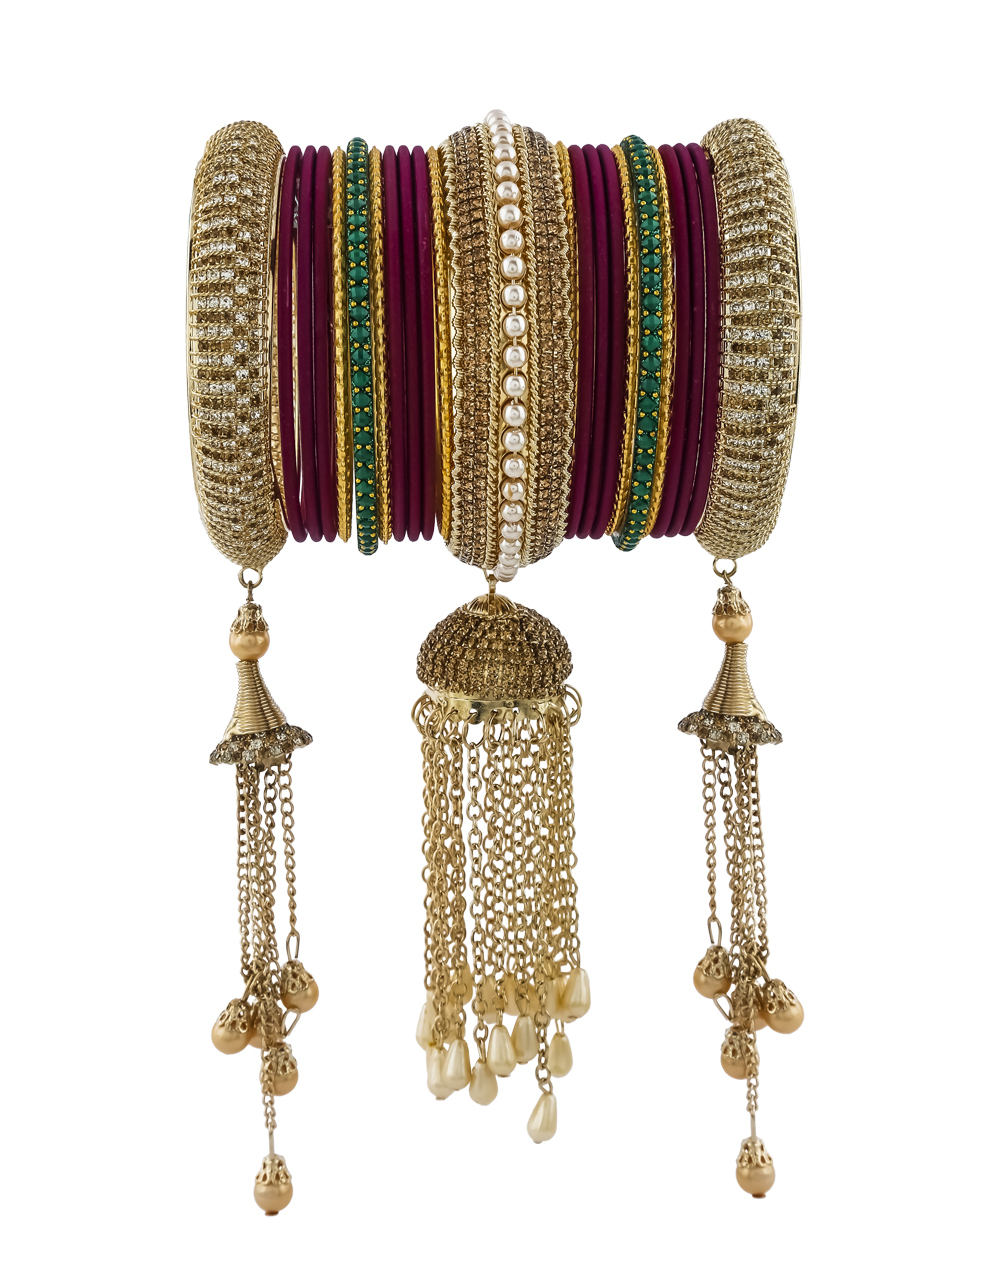 Very Classy Burgundy Colour Matching Bangles Set For Women.